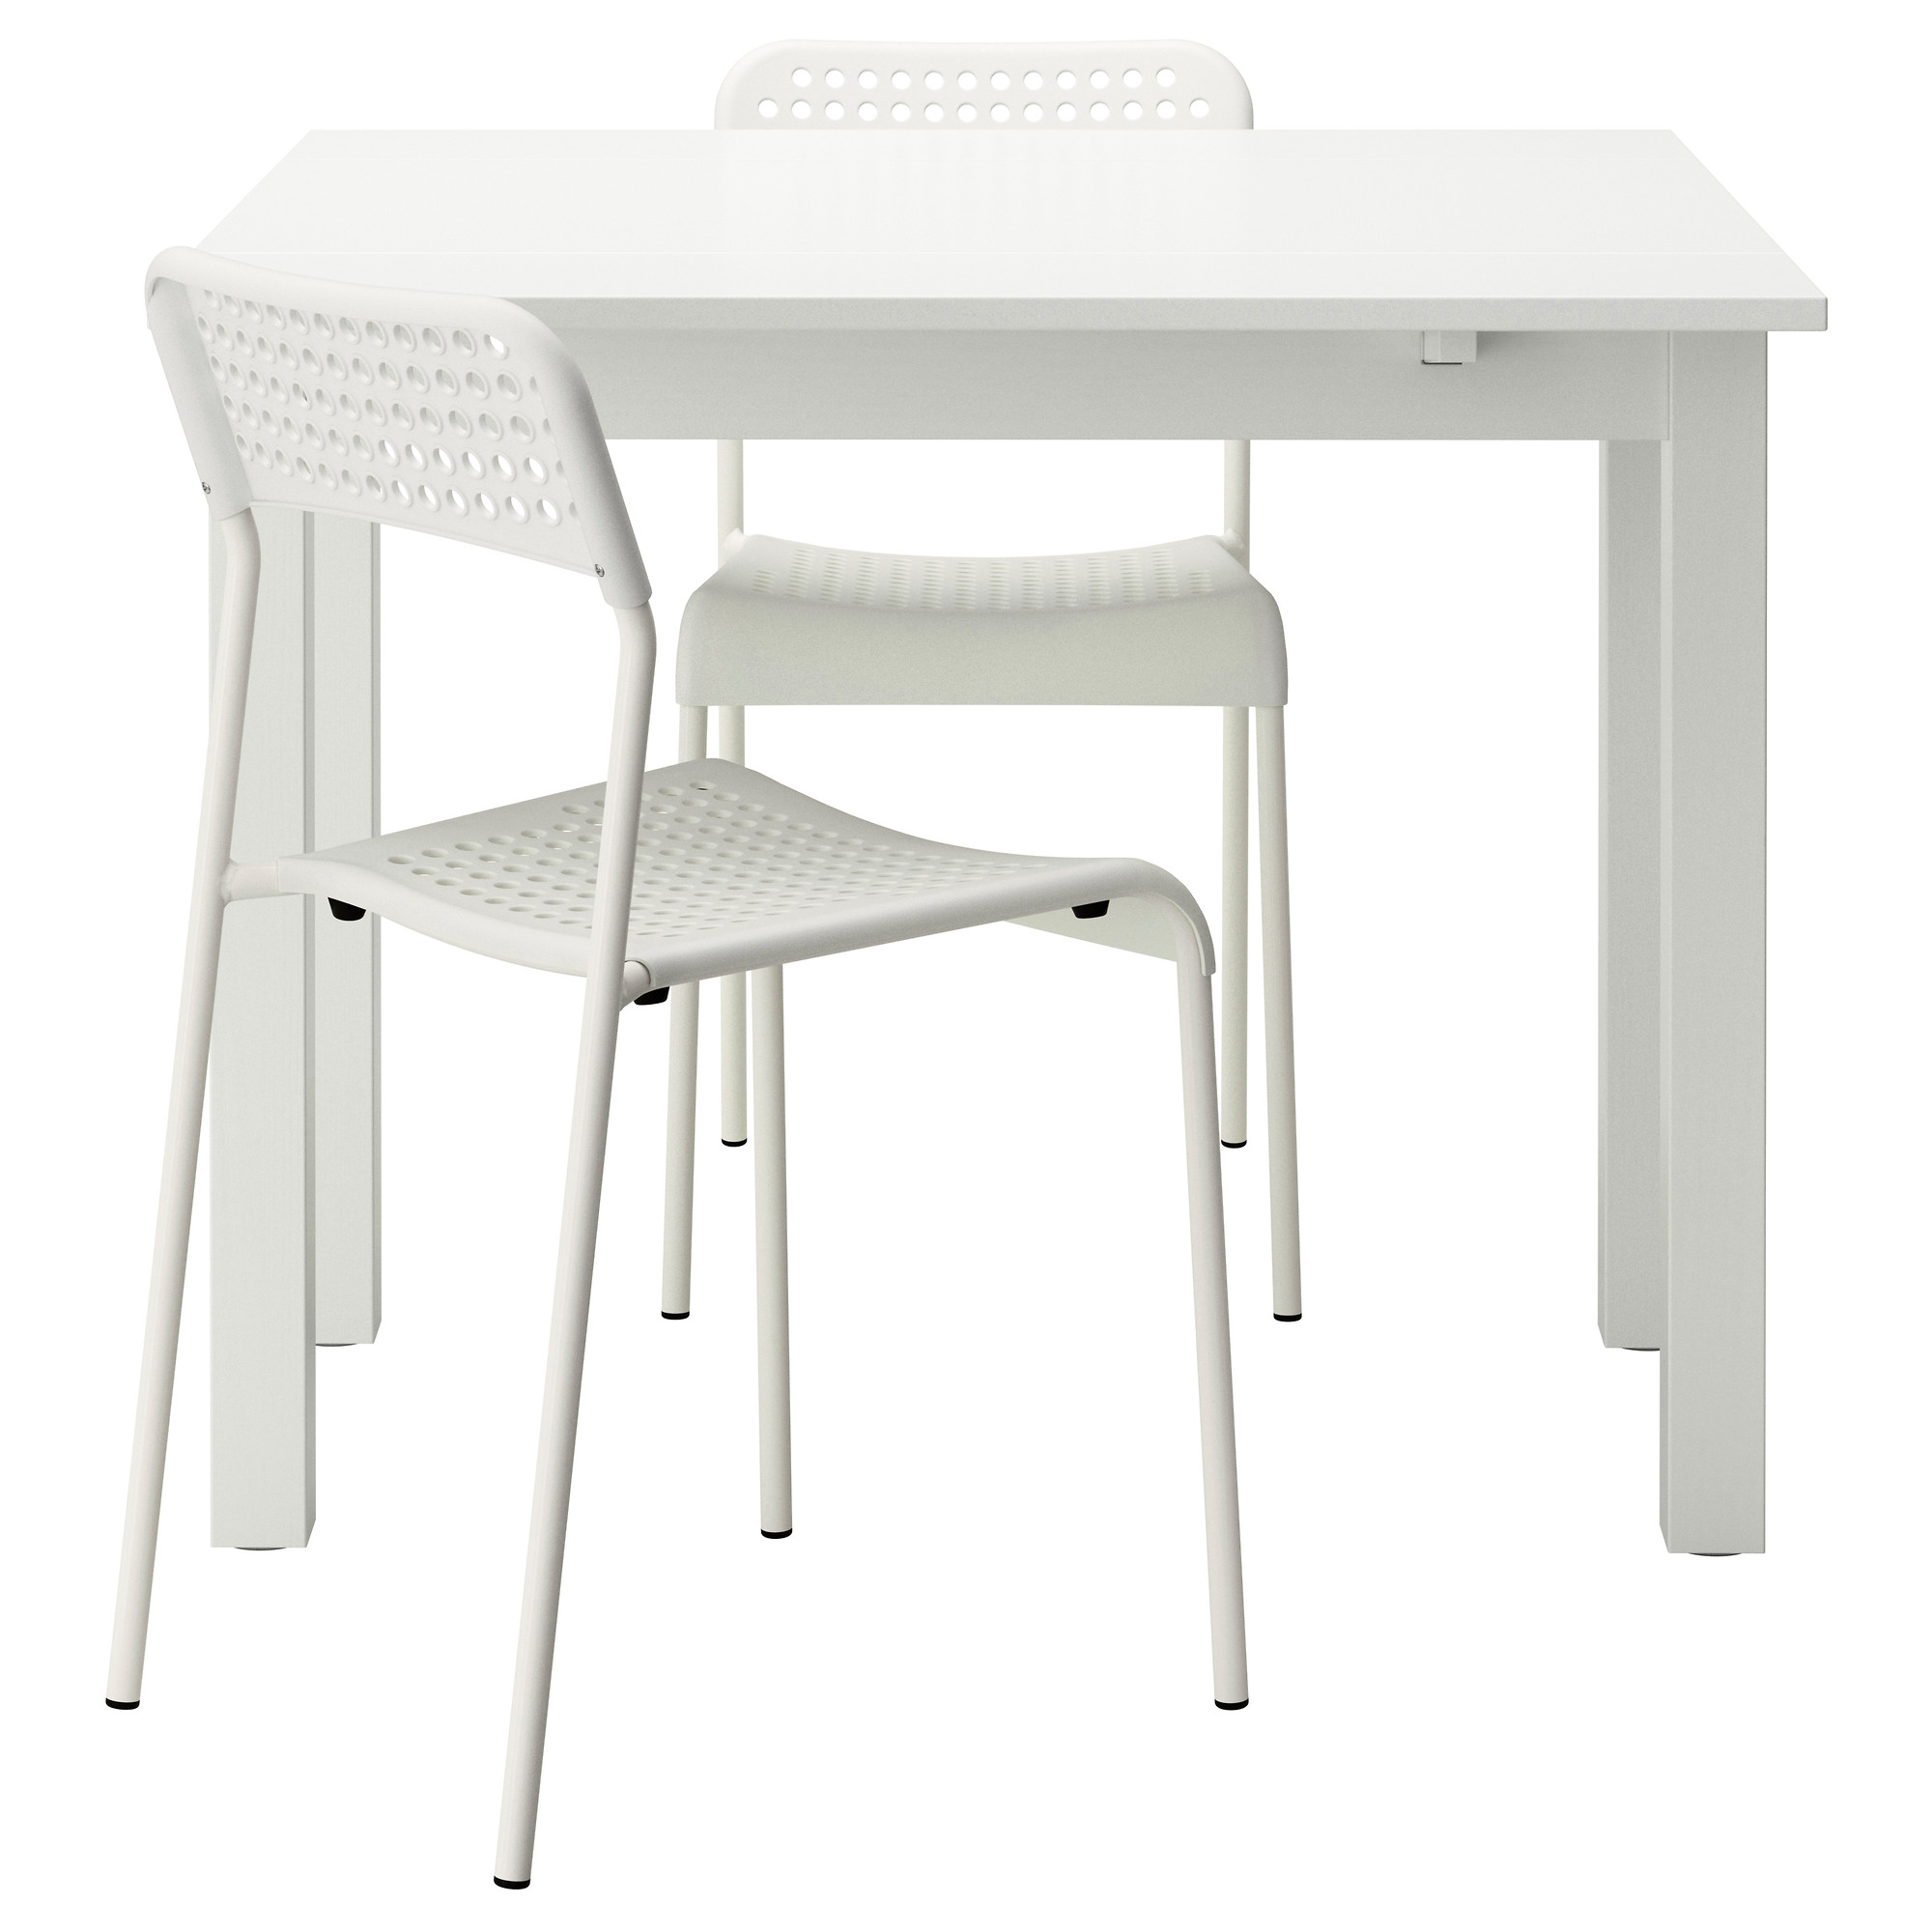 Table et chaise de cuisine ikea table chaise cuisine for Table de cuisine kreabel